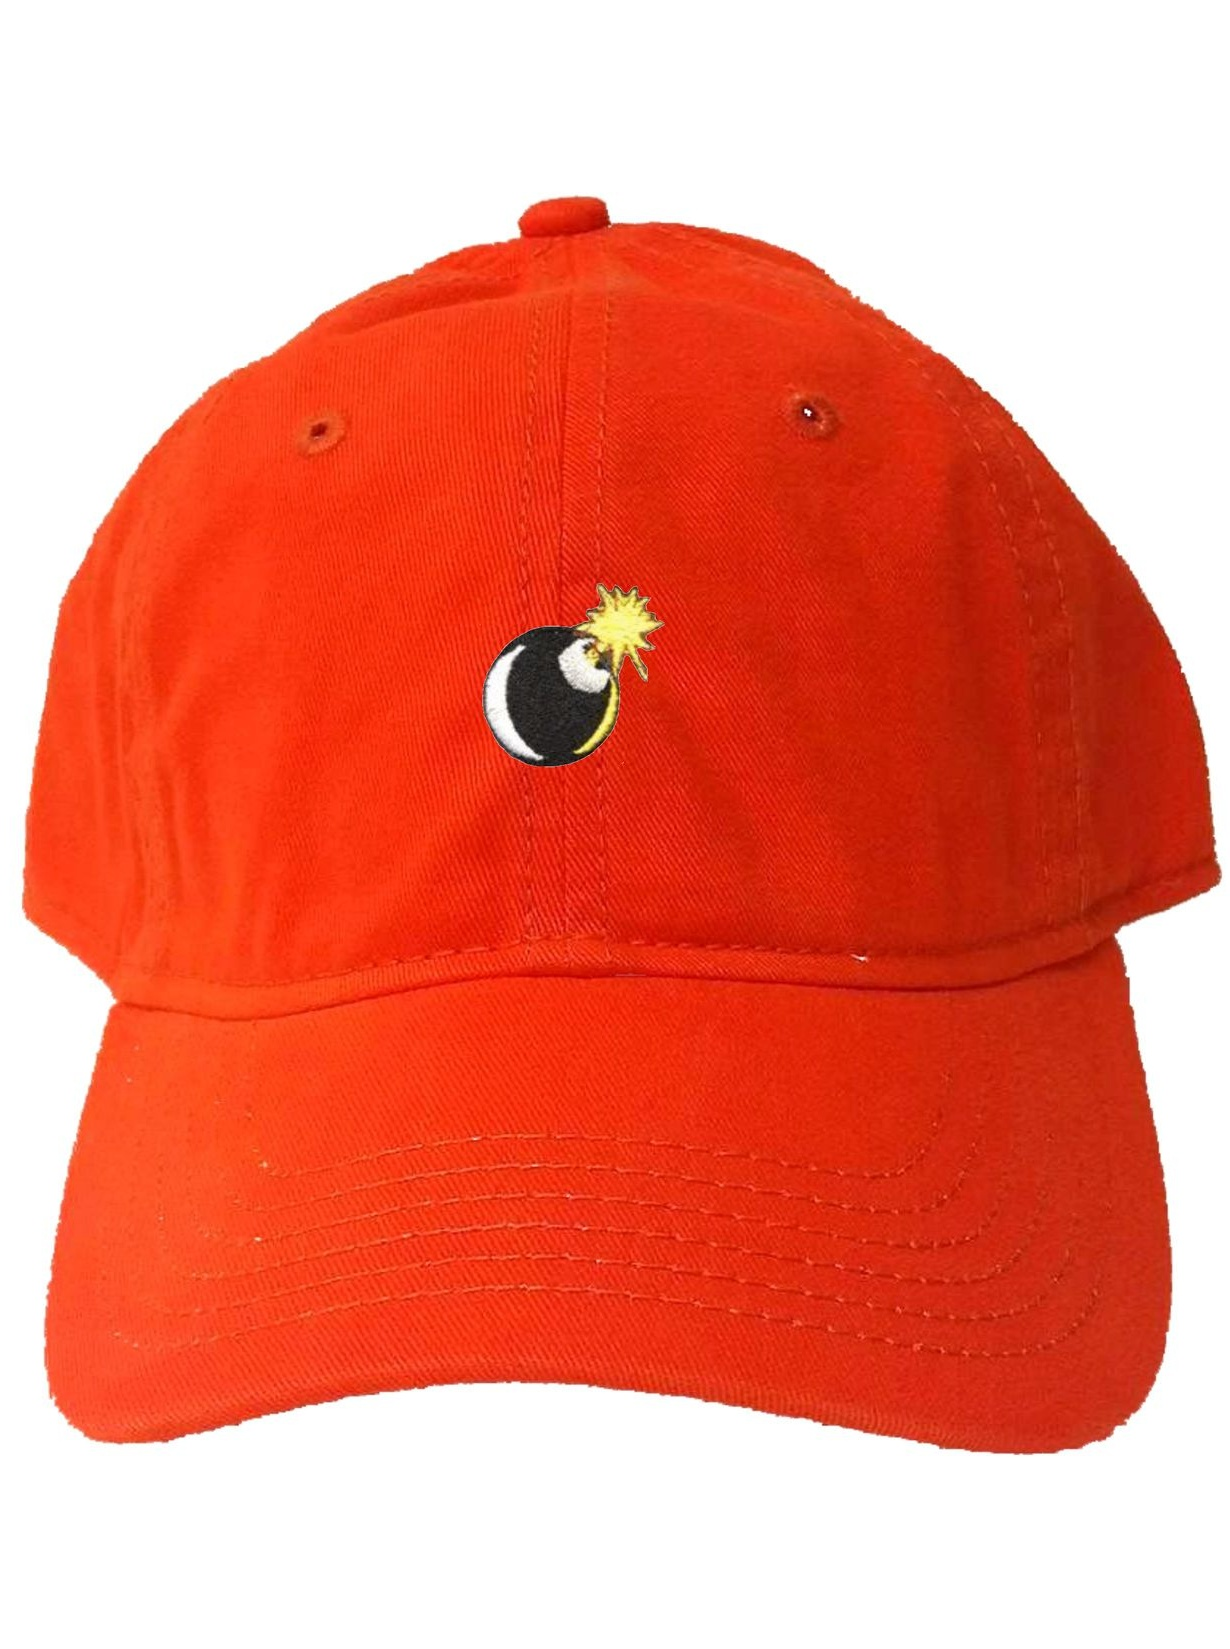 Go All Out Adult Peach Embroidered Dad Hat